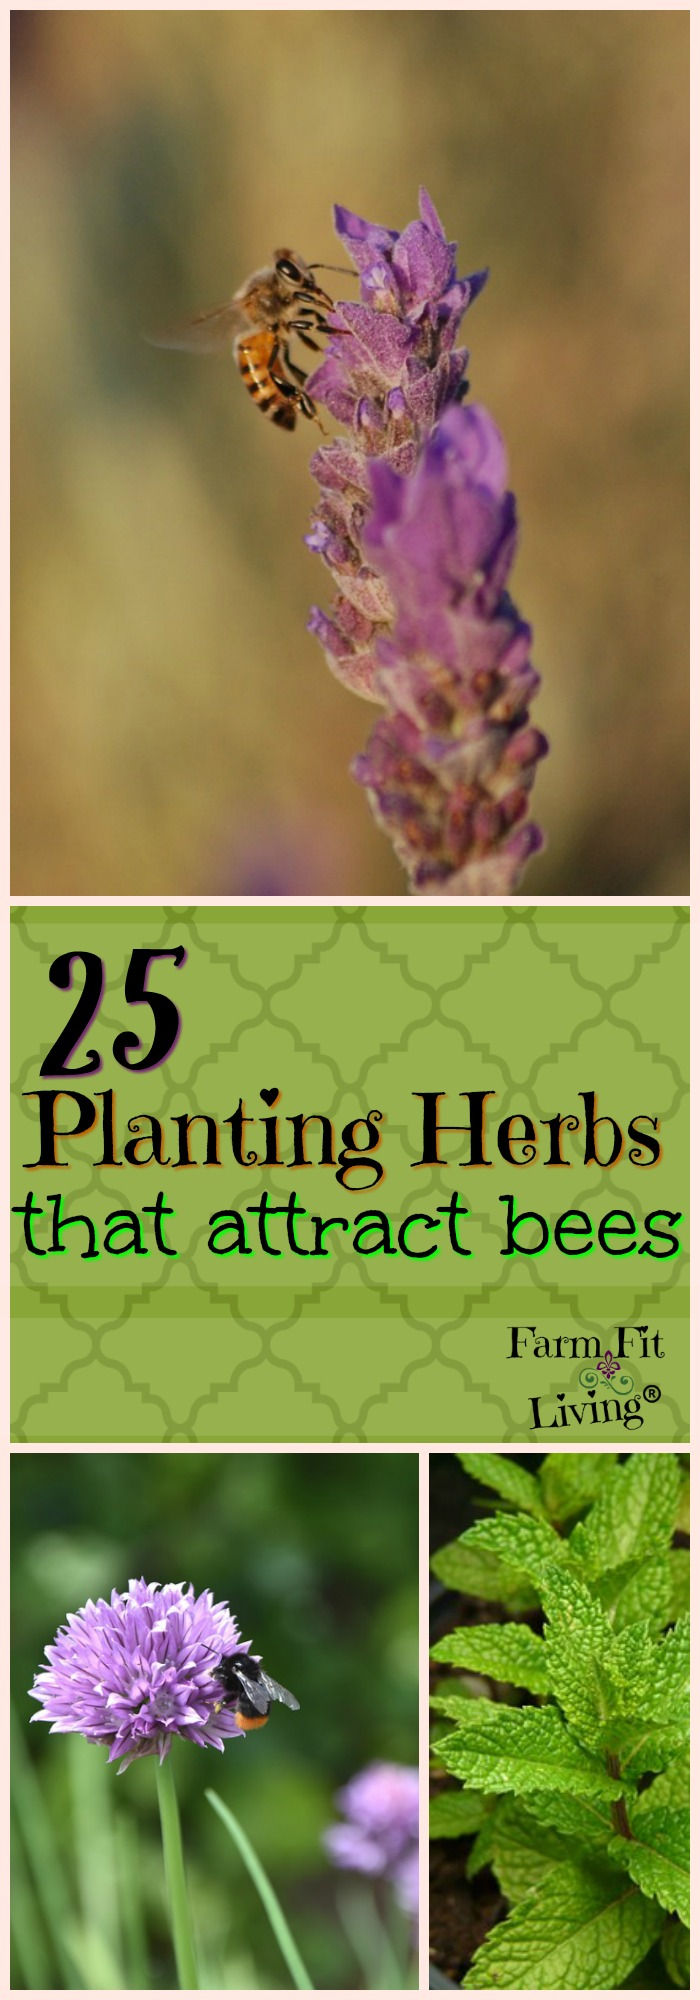 Are you looking for a way to help the bees that can also help you? Planting herbs that attract bees can also have medicinal and culinary benefits for you! Here's the best facts about the 25 herbs that bees love and we do, too.